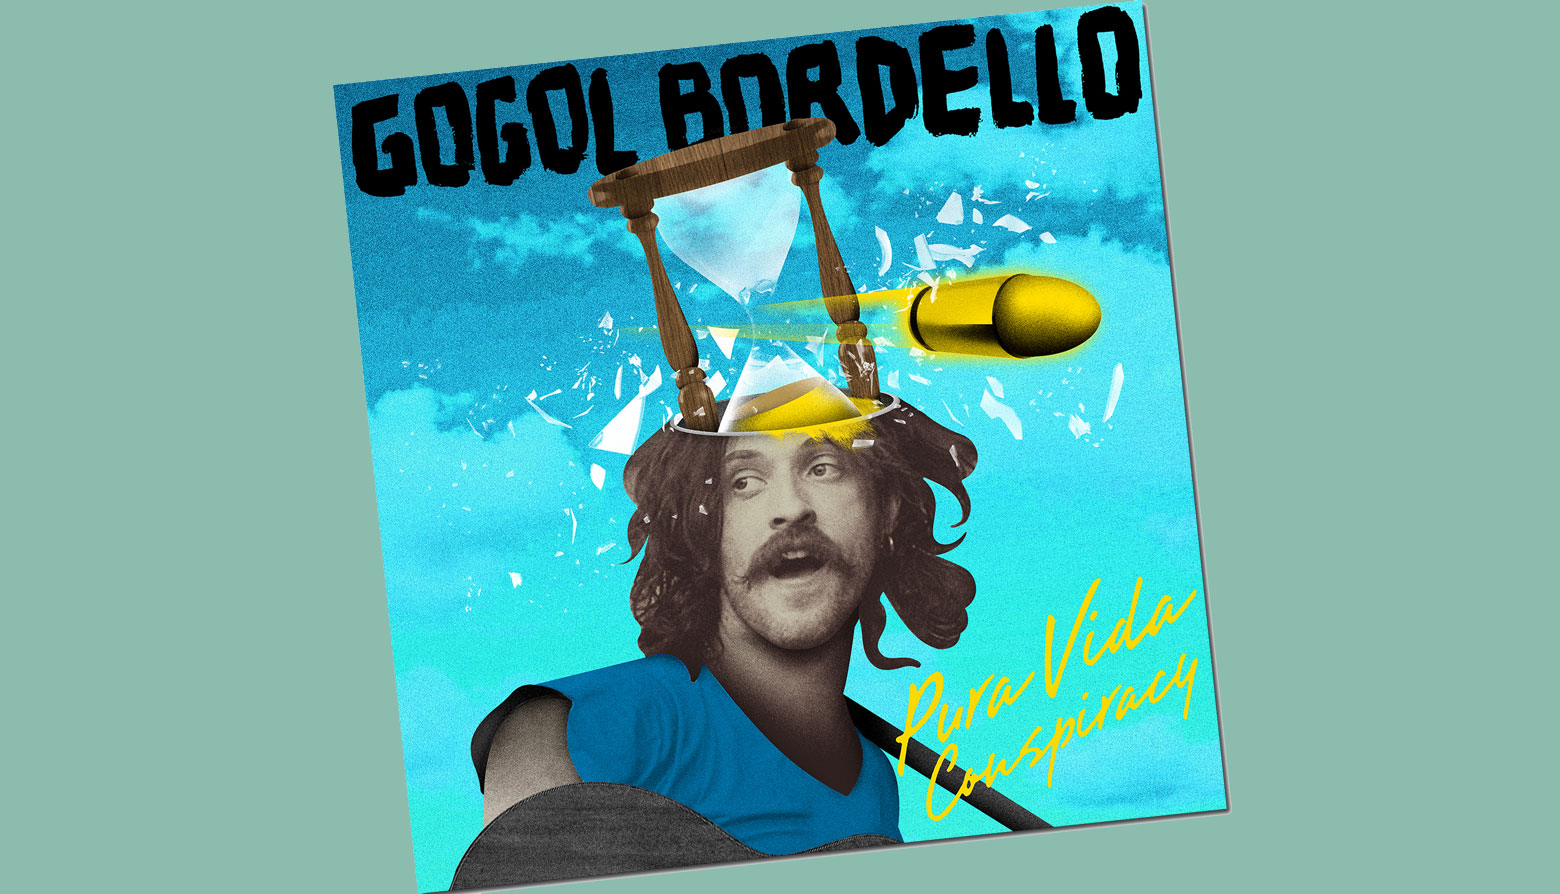 Gogol-Bordello-album-cover-Pura-Vida-Conspiracy